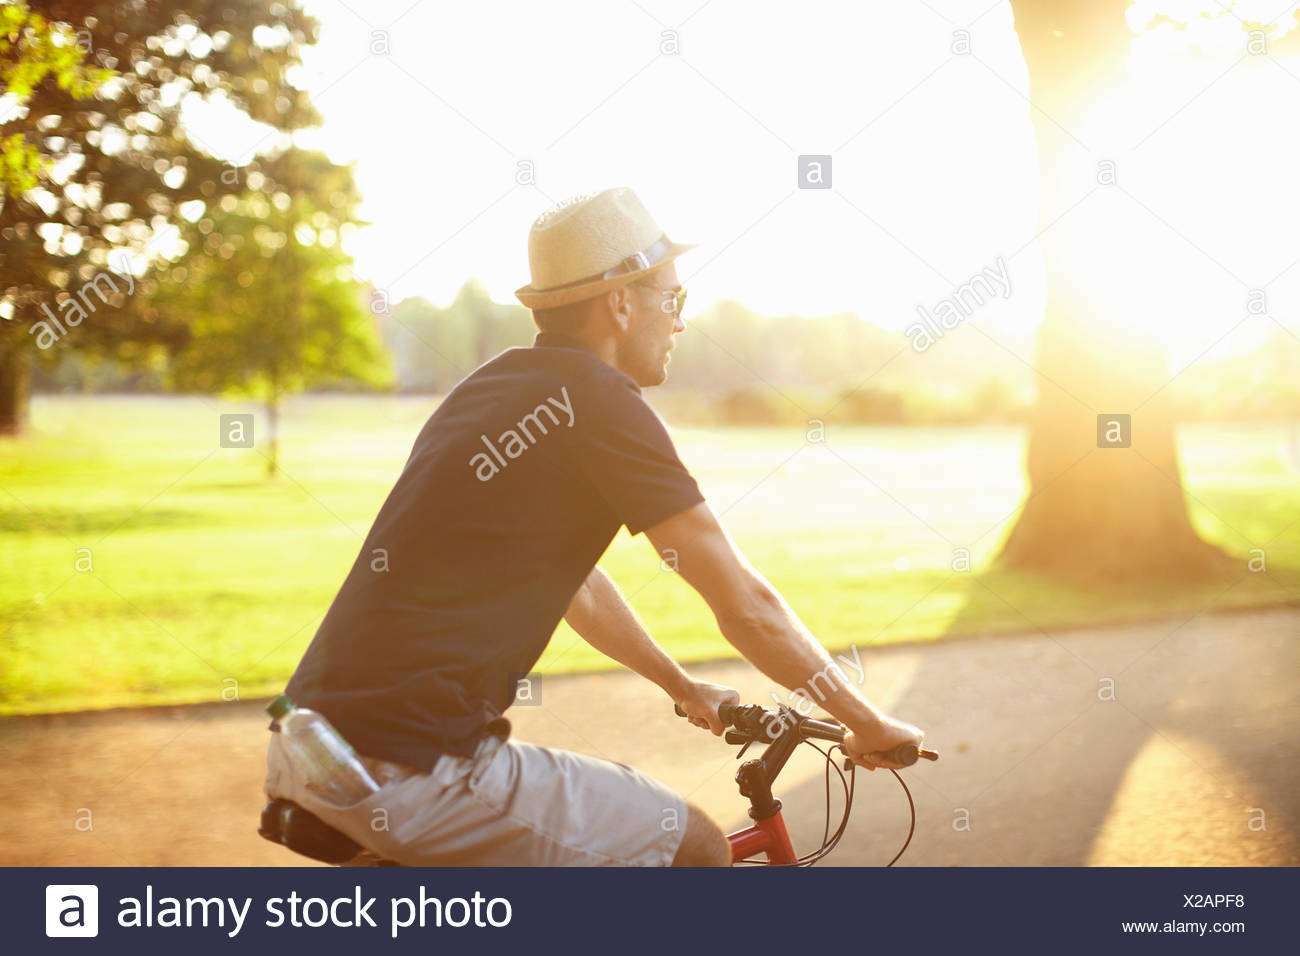 Mid adult man riding bicycle in sunlit park - Stock Image